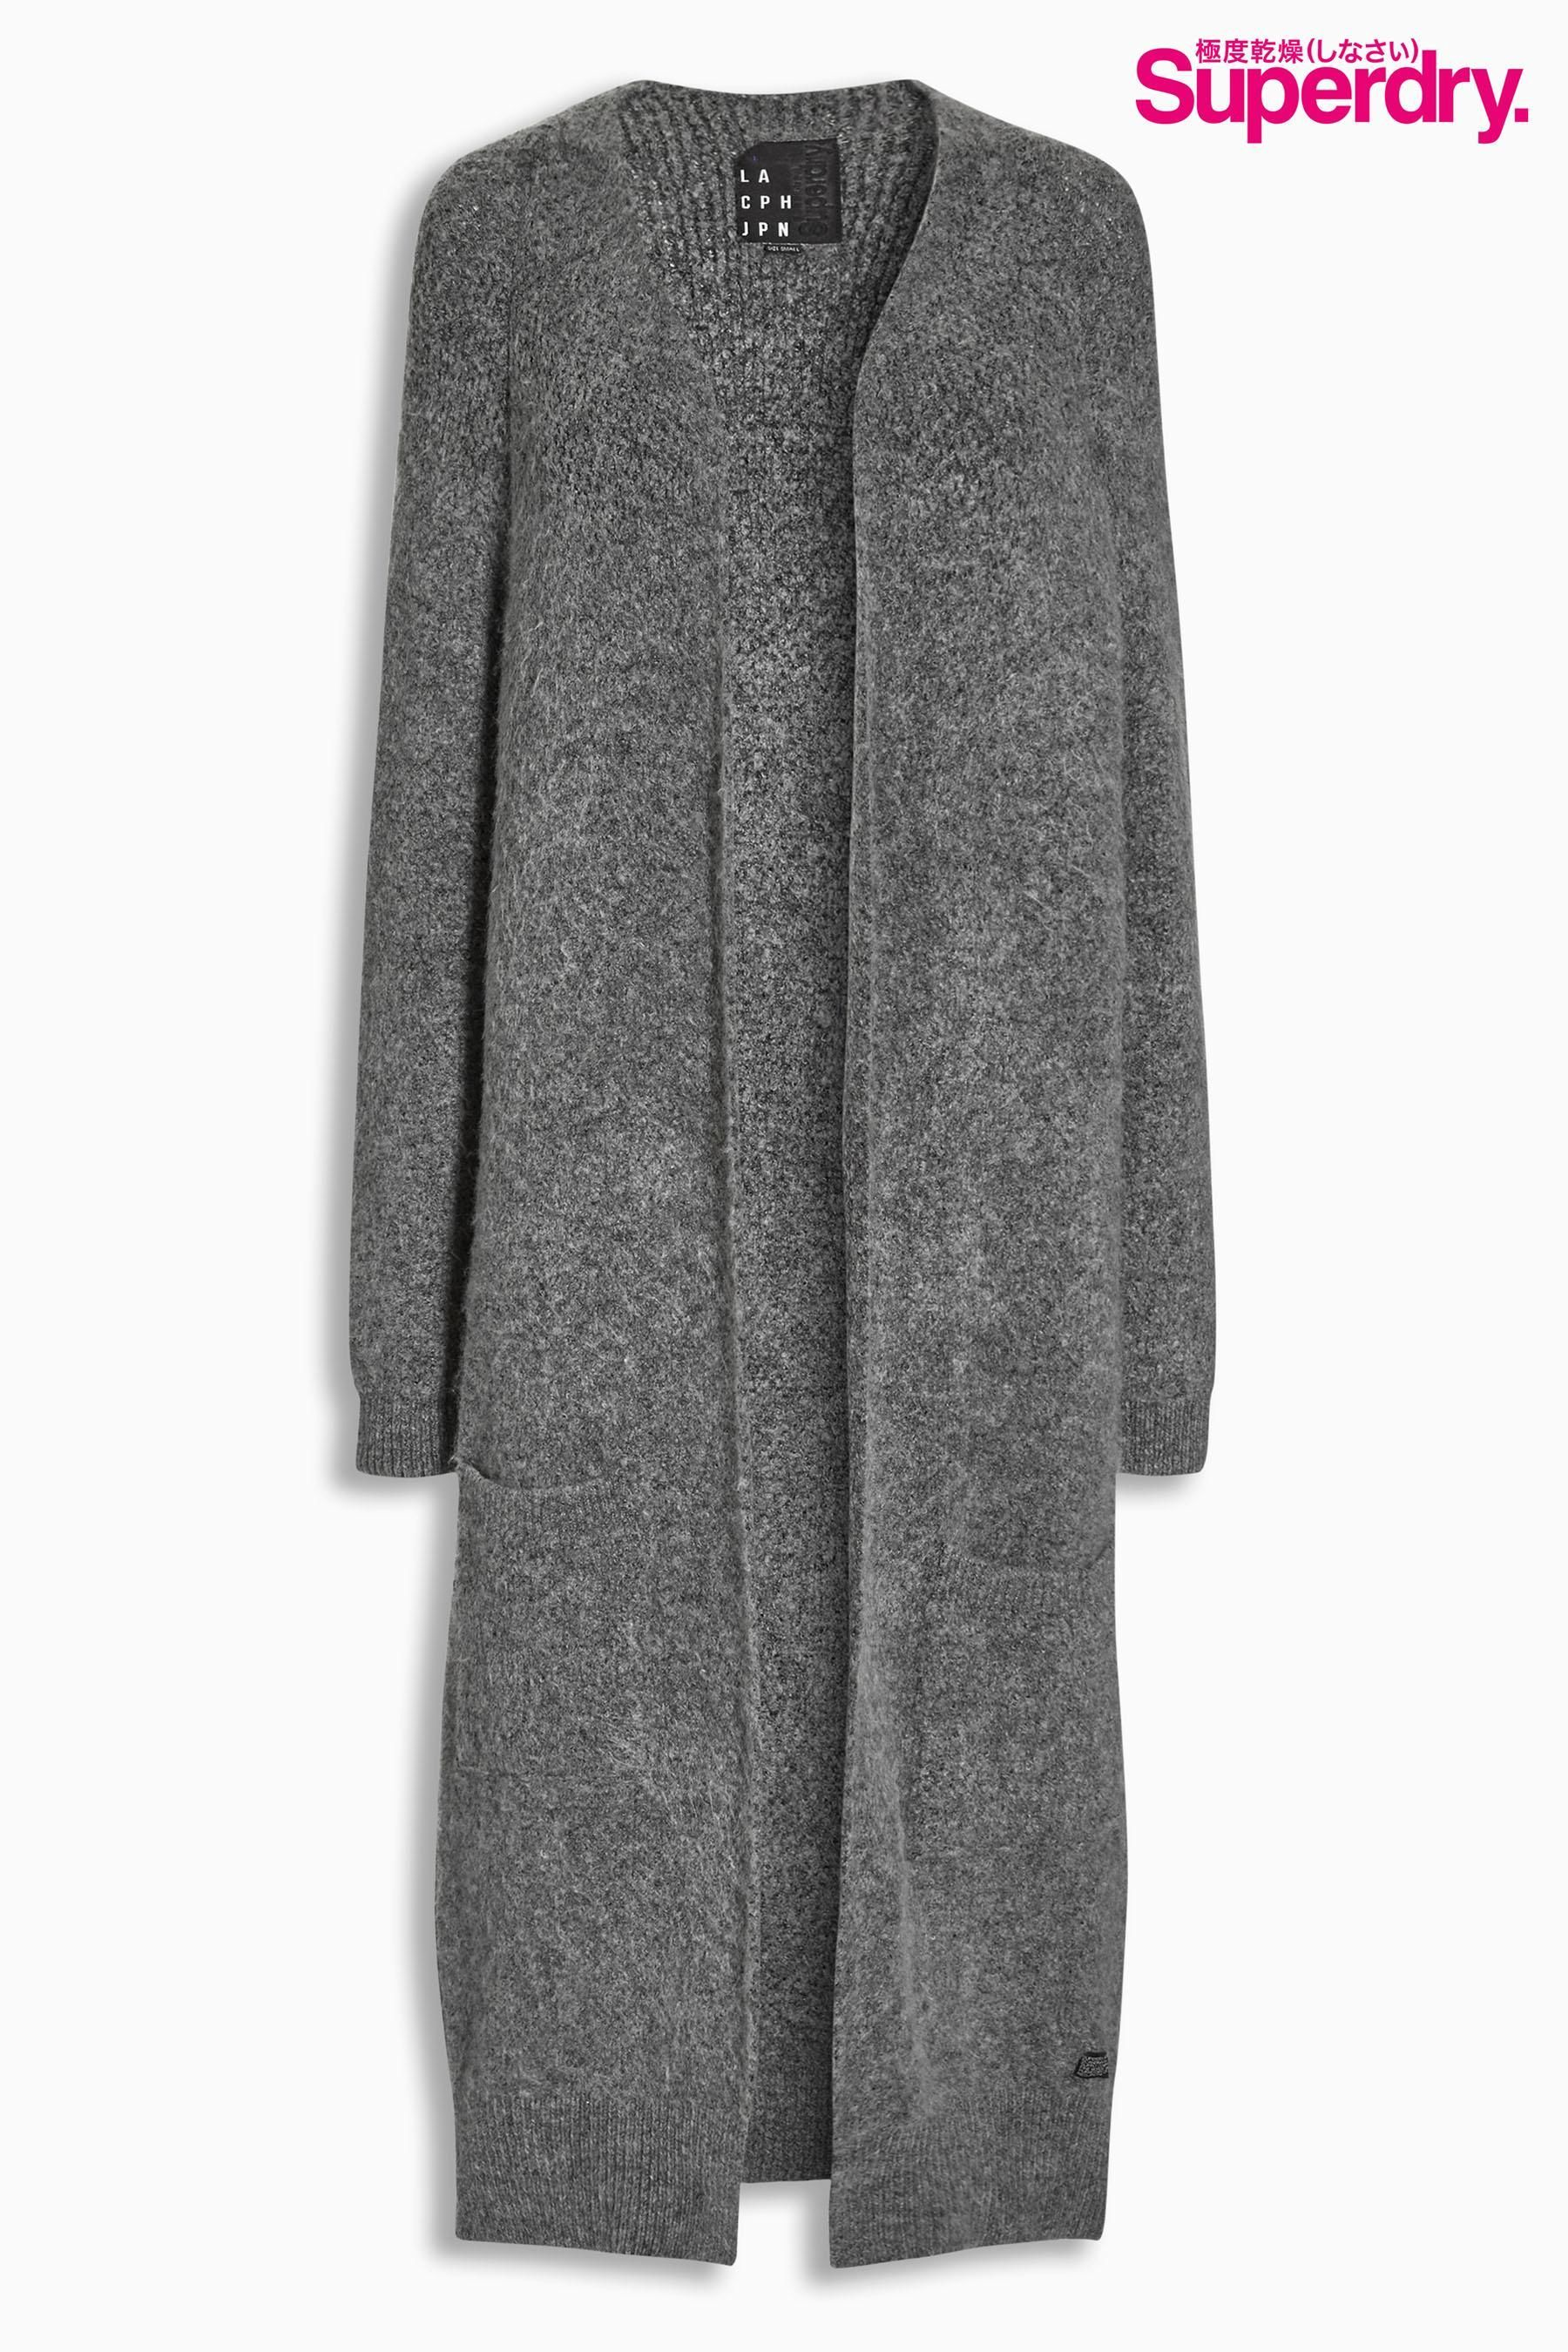 Buy Superdry Grey Anya Longline Cardigan from the Next UK online ...